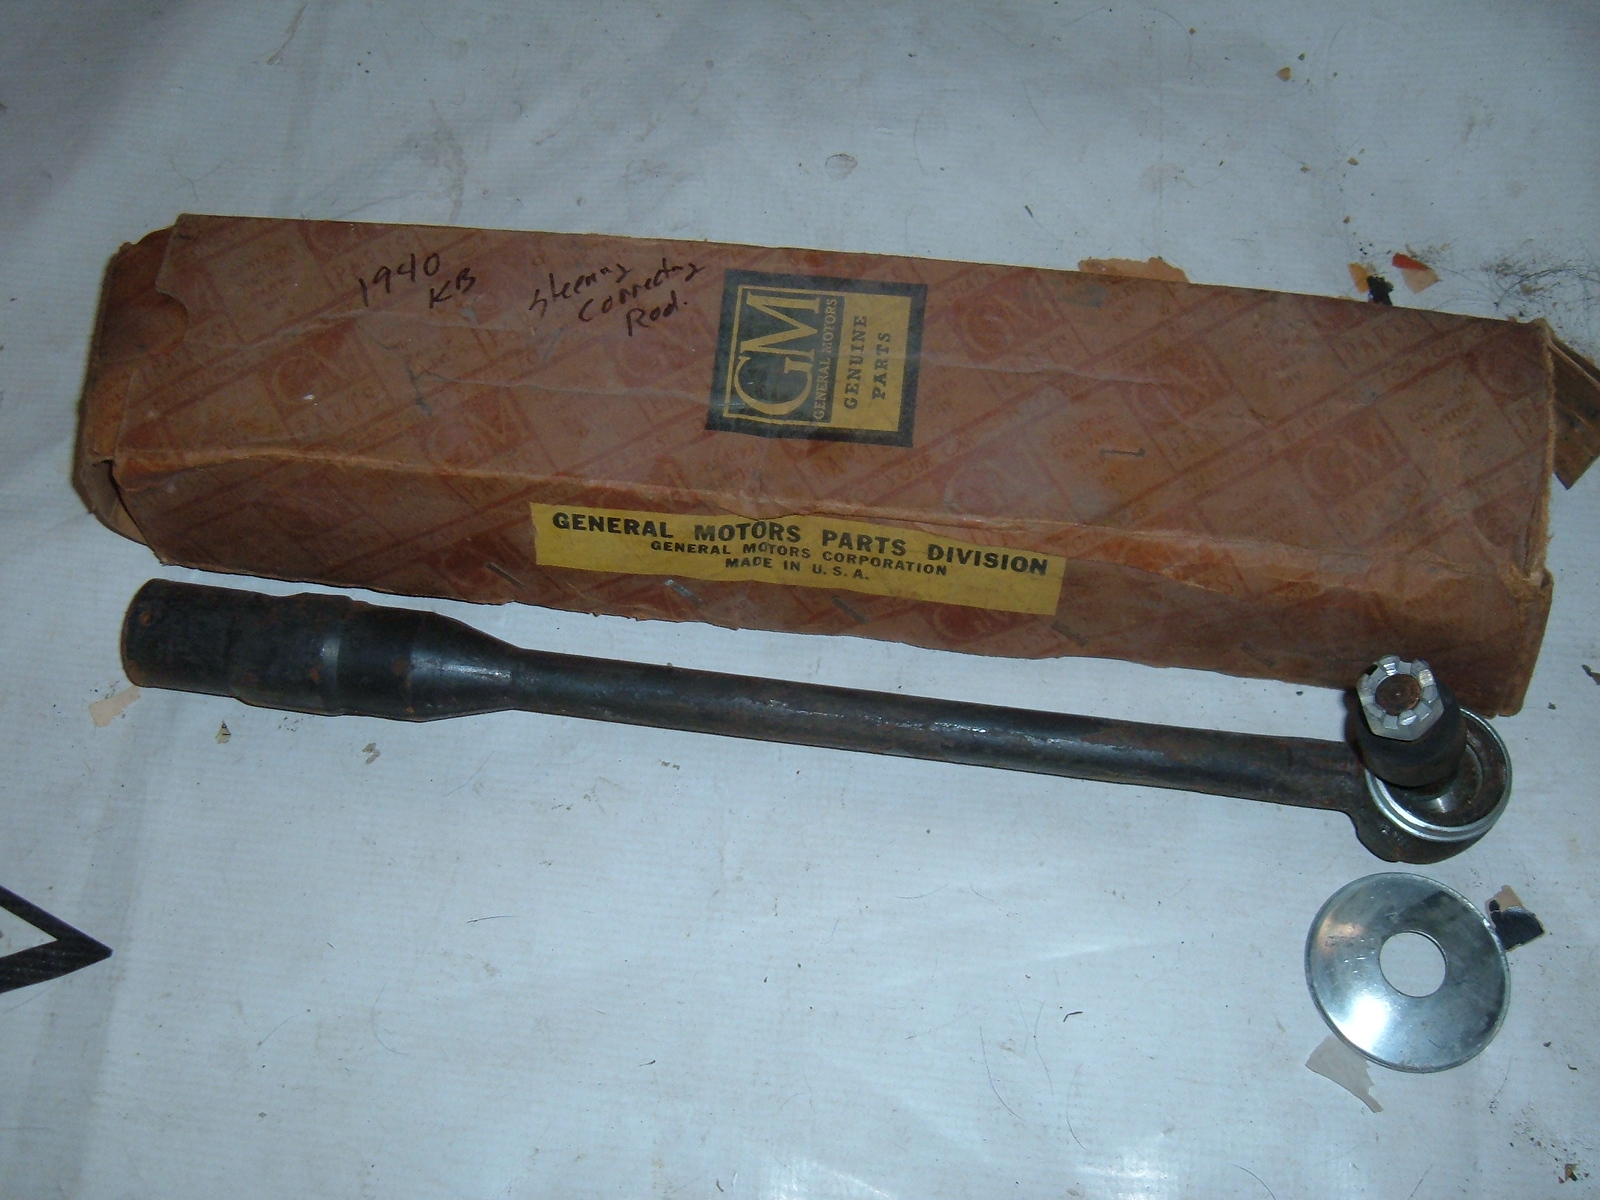 1940 chevrolet steering connecting rod (drag link) nos gm 605335 (z 605335)